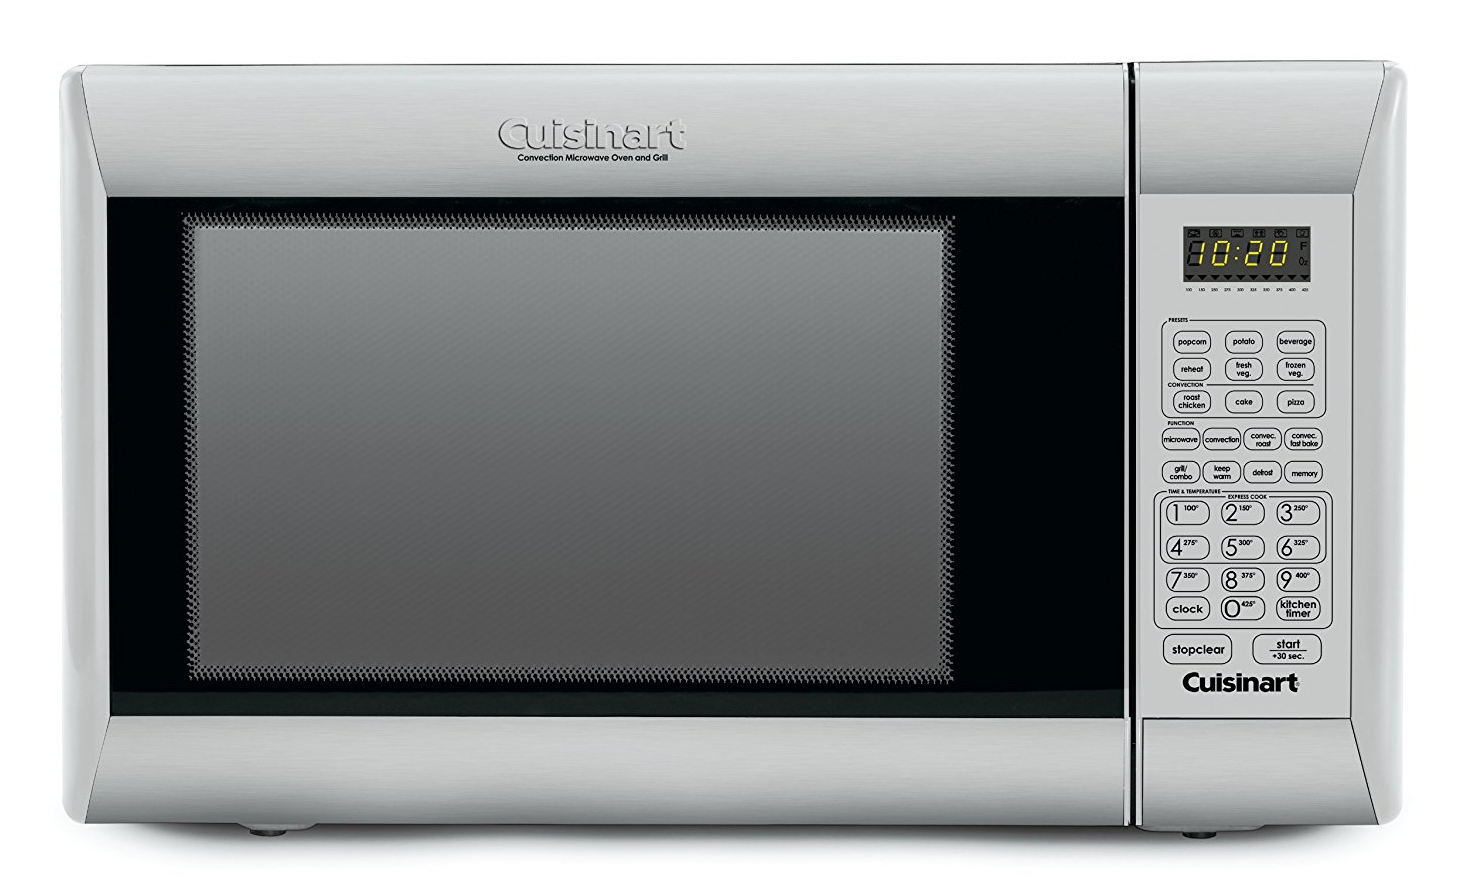 Cuisinart cmw-200 Review